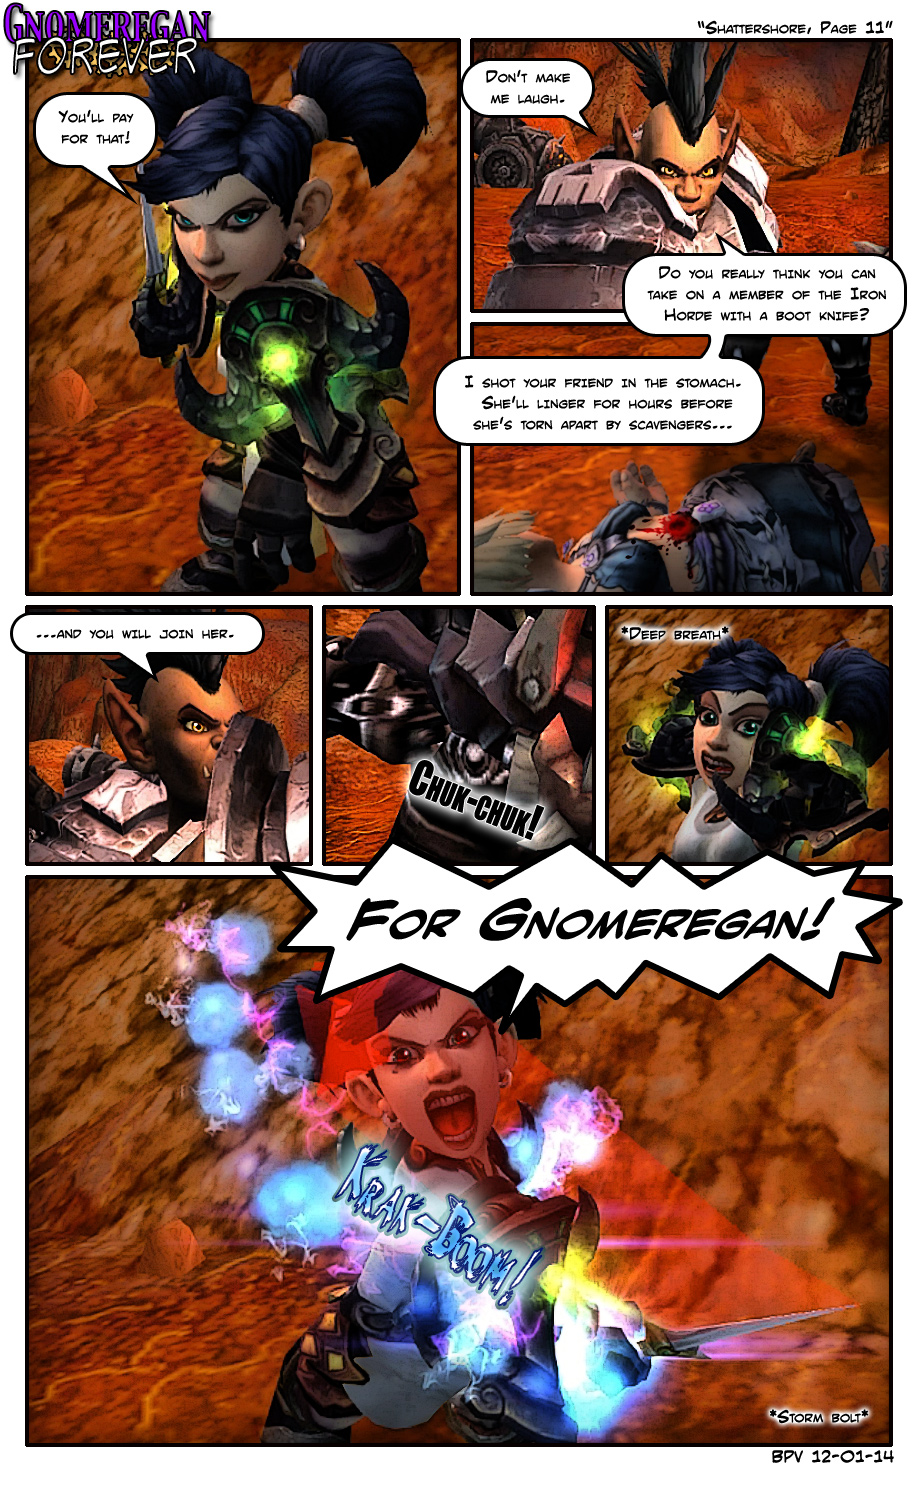 Shattershore, Page 11